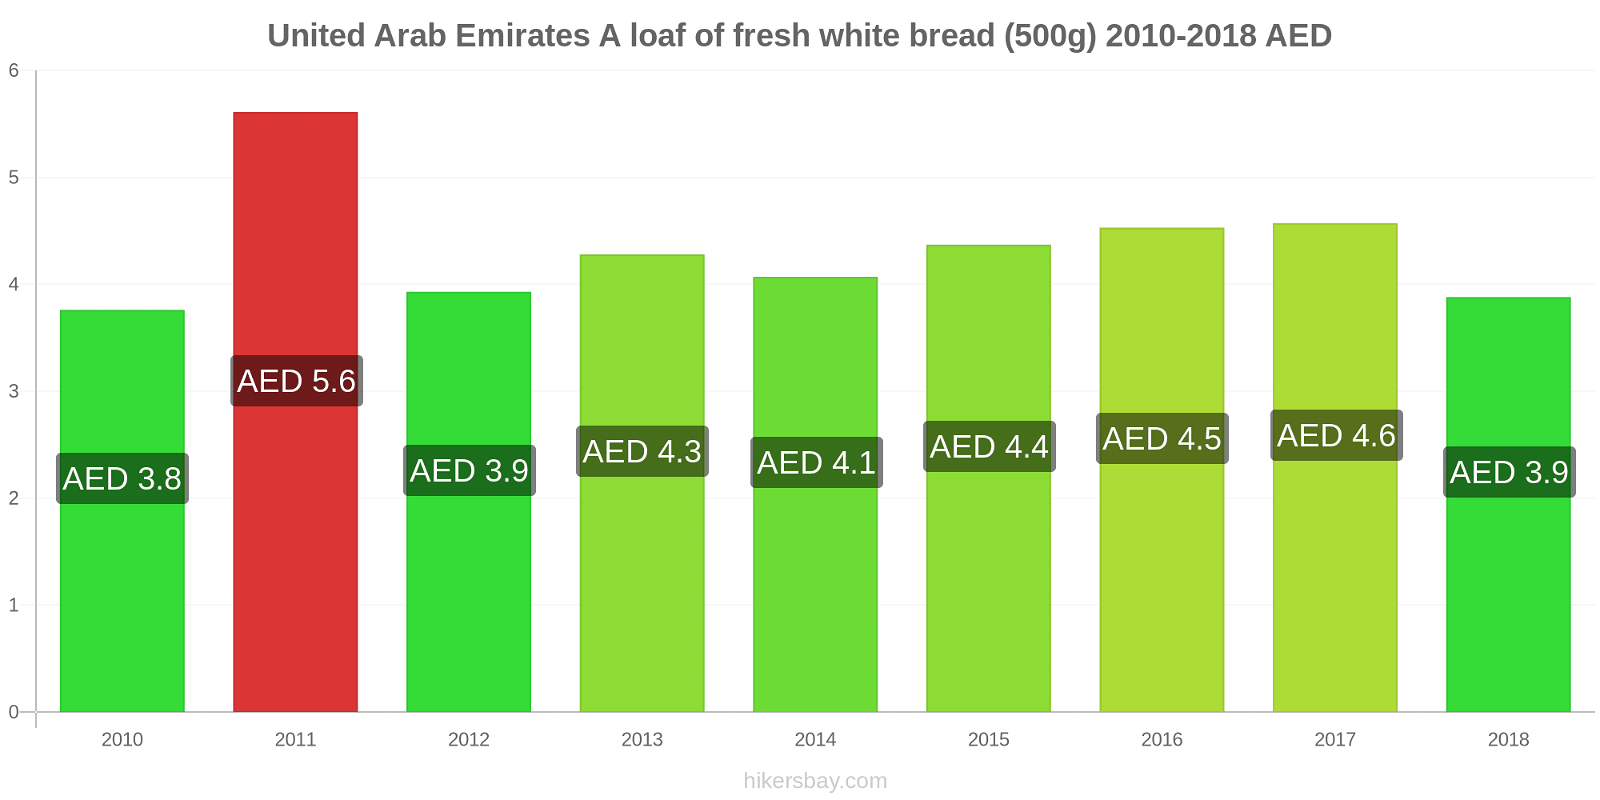 United Arab Emirates price changes A loaf of fresh white bread (500g) hikersbay.com